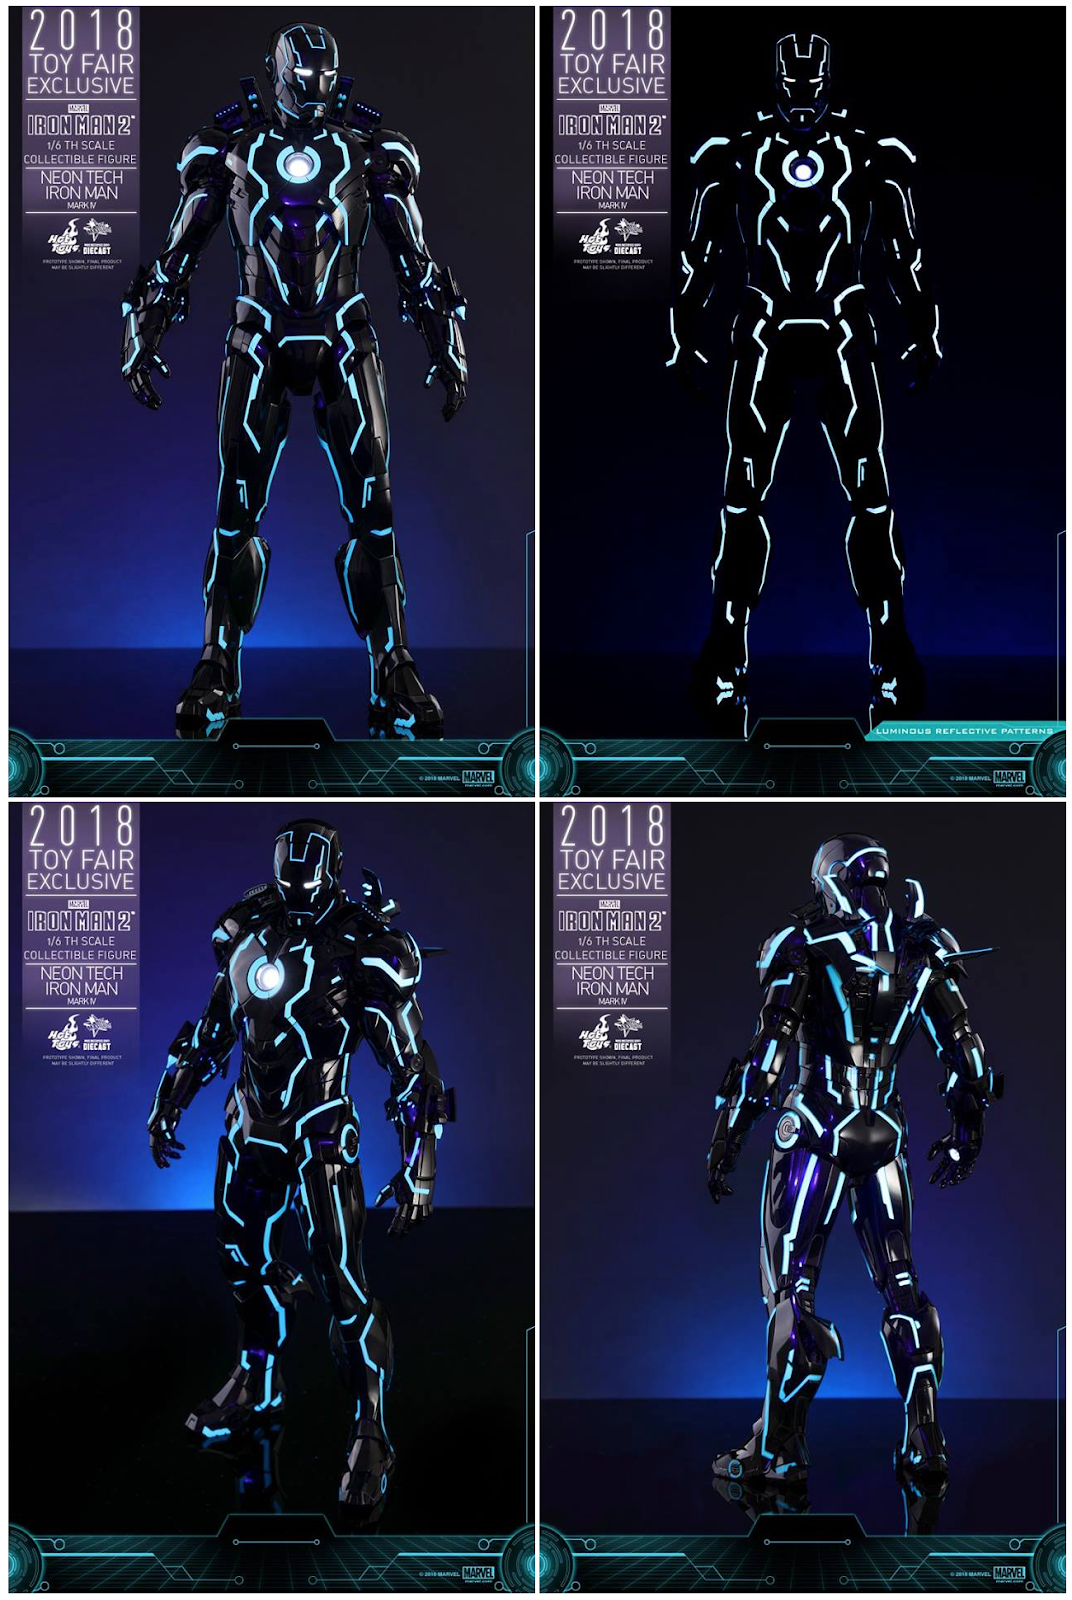 Neon Tech Iron Man Mark Iv 1 6 Collectible Figure From Hot Toys Suit Schematics Continued Crafted With Phenomenal Details That Astonish Fans Its High Level Of Authenticity The Over 32cm Tall Diecast